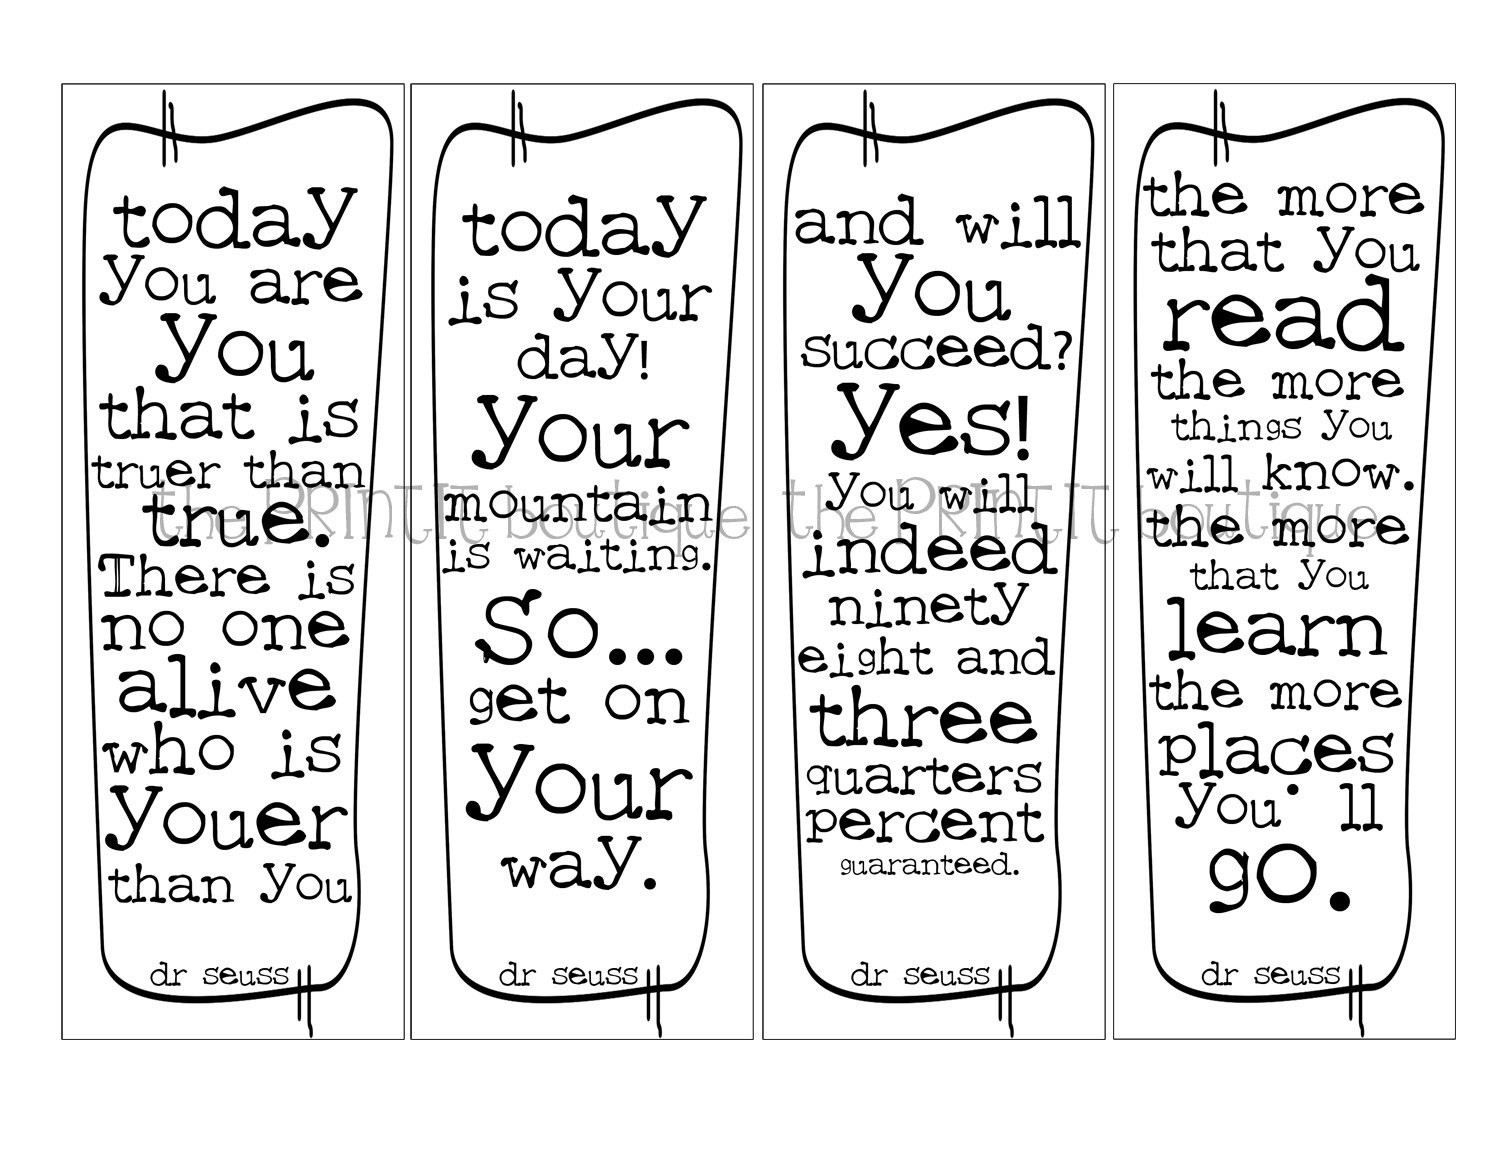 Printable Bookmarks To Color | Like This Item? | School Library in Bookmark Designs To Print Black And White Quotes 26454